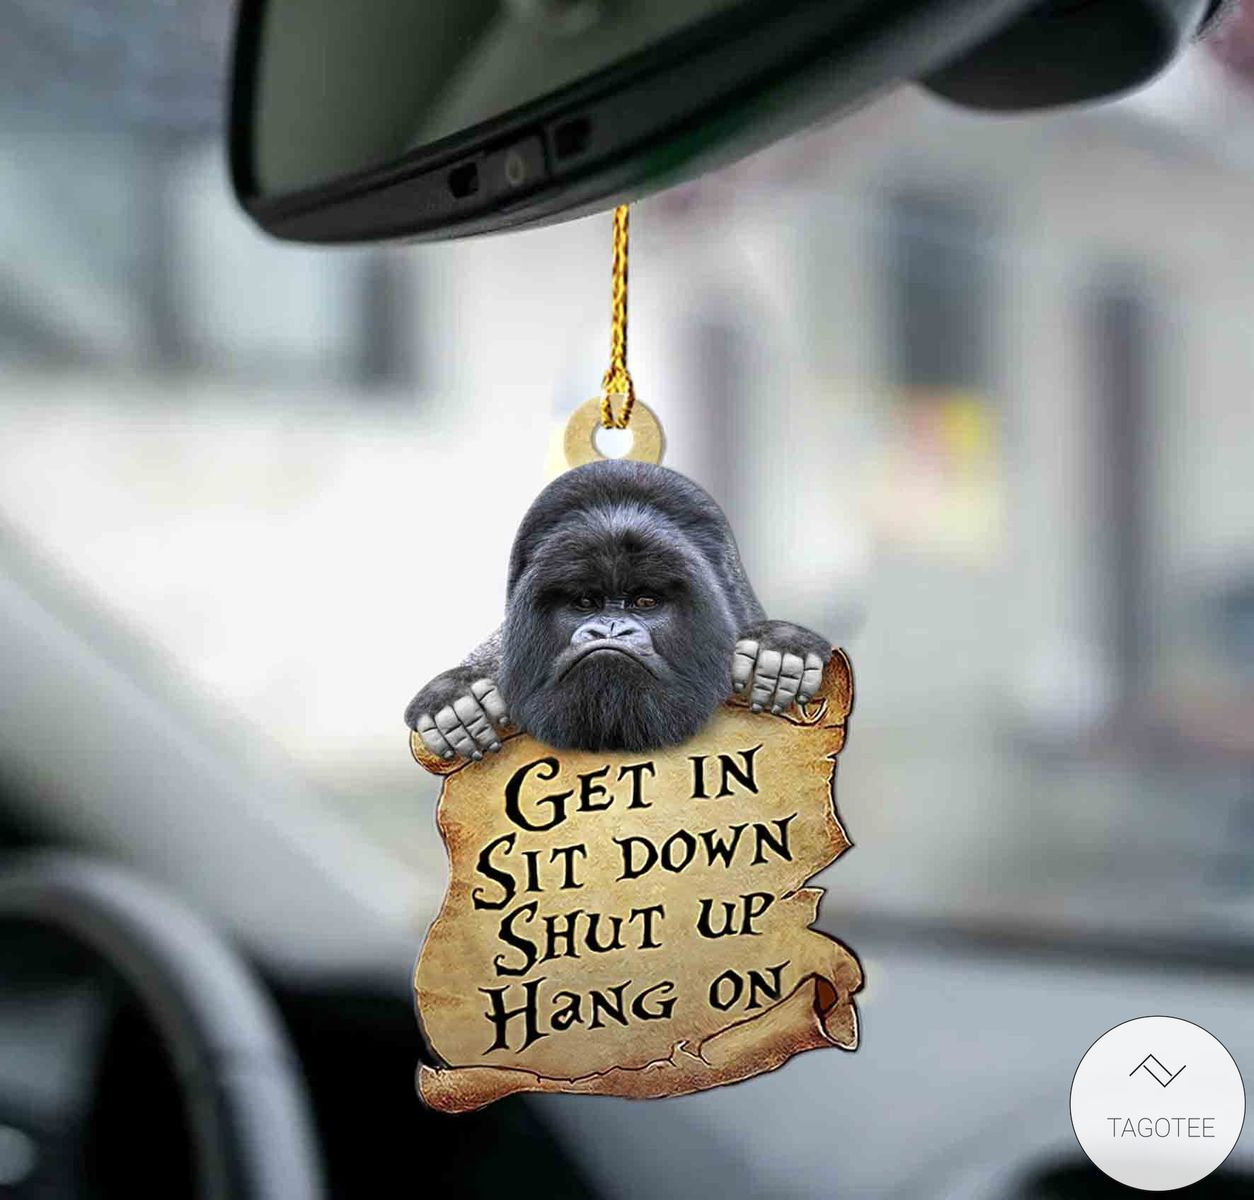 Gorilla Get In Sit Down Shut Up Hang On Mica Plastic Car Hanging Ornament